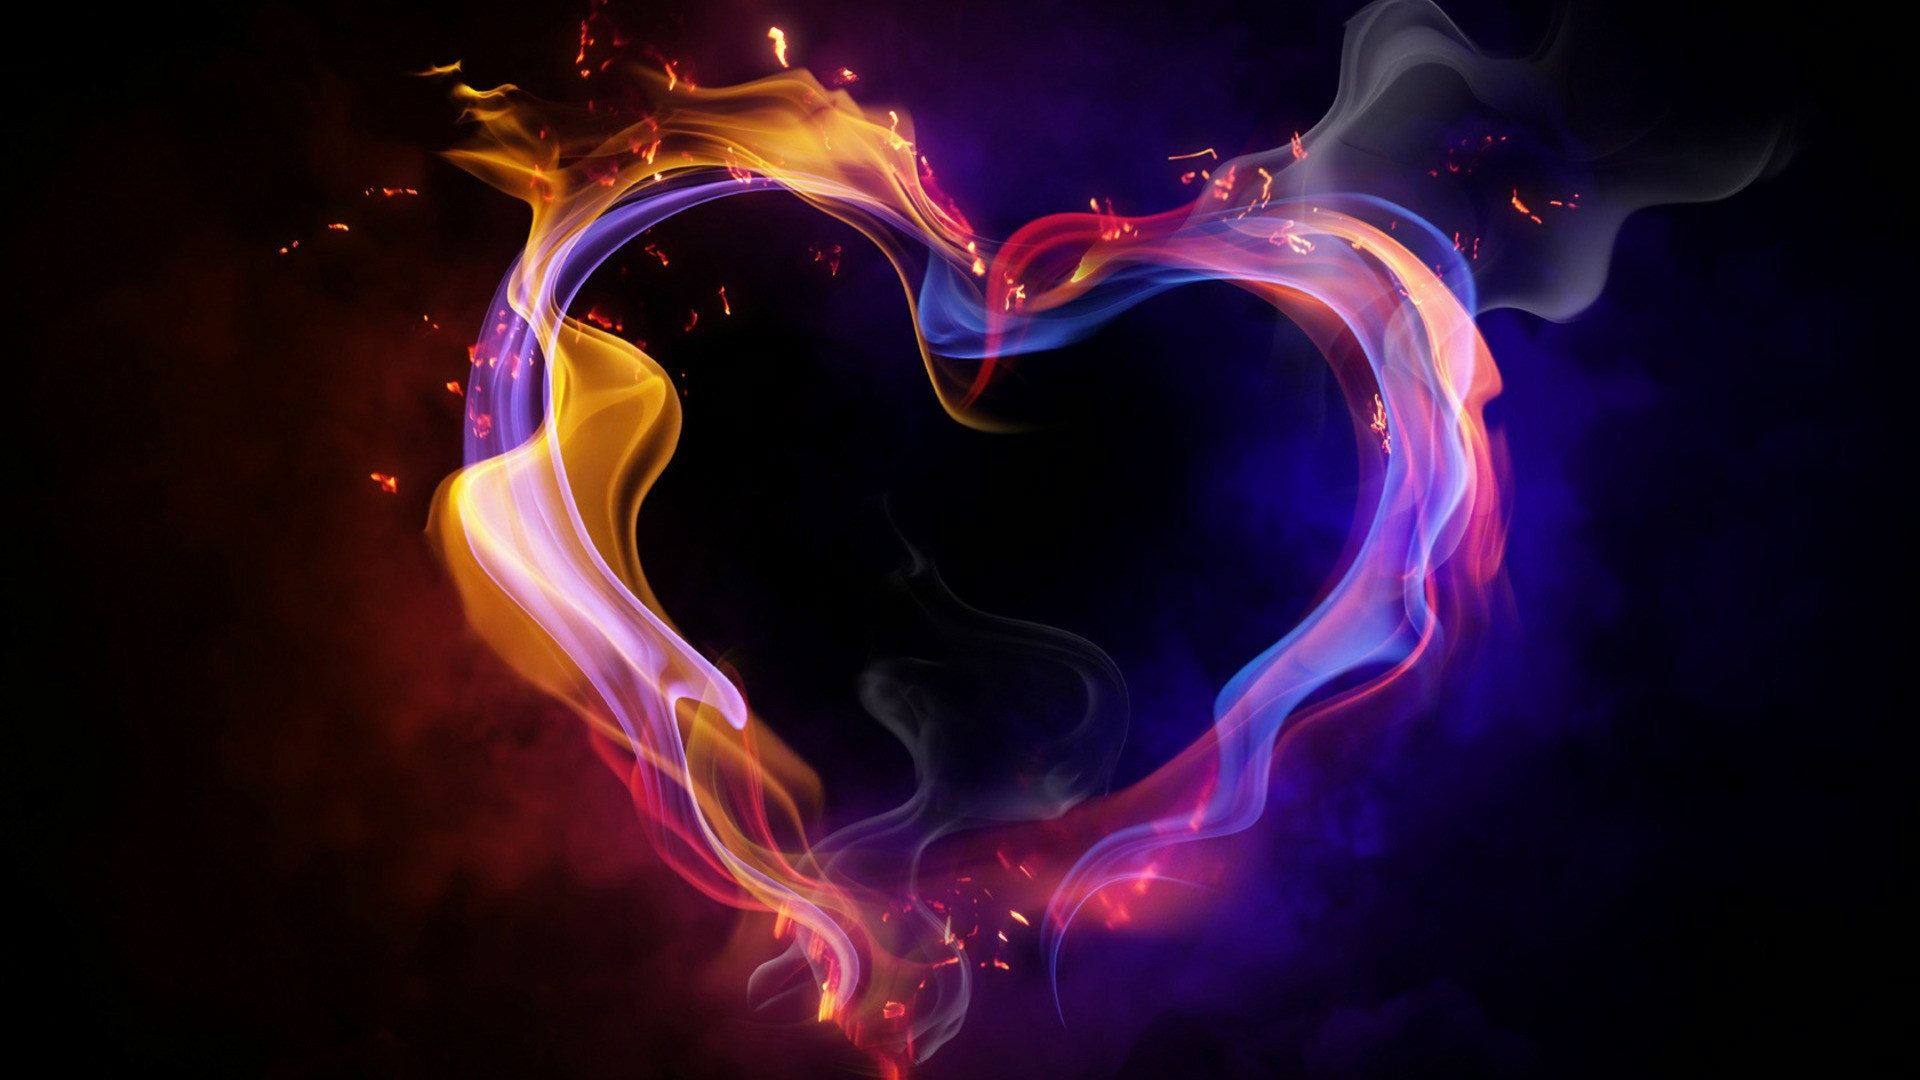 Cool-Heart-Backgrounds-1920x1080-hd-cool-color-abstract-heart-desktop-backgrounds-wallpaper-wpc5803688